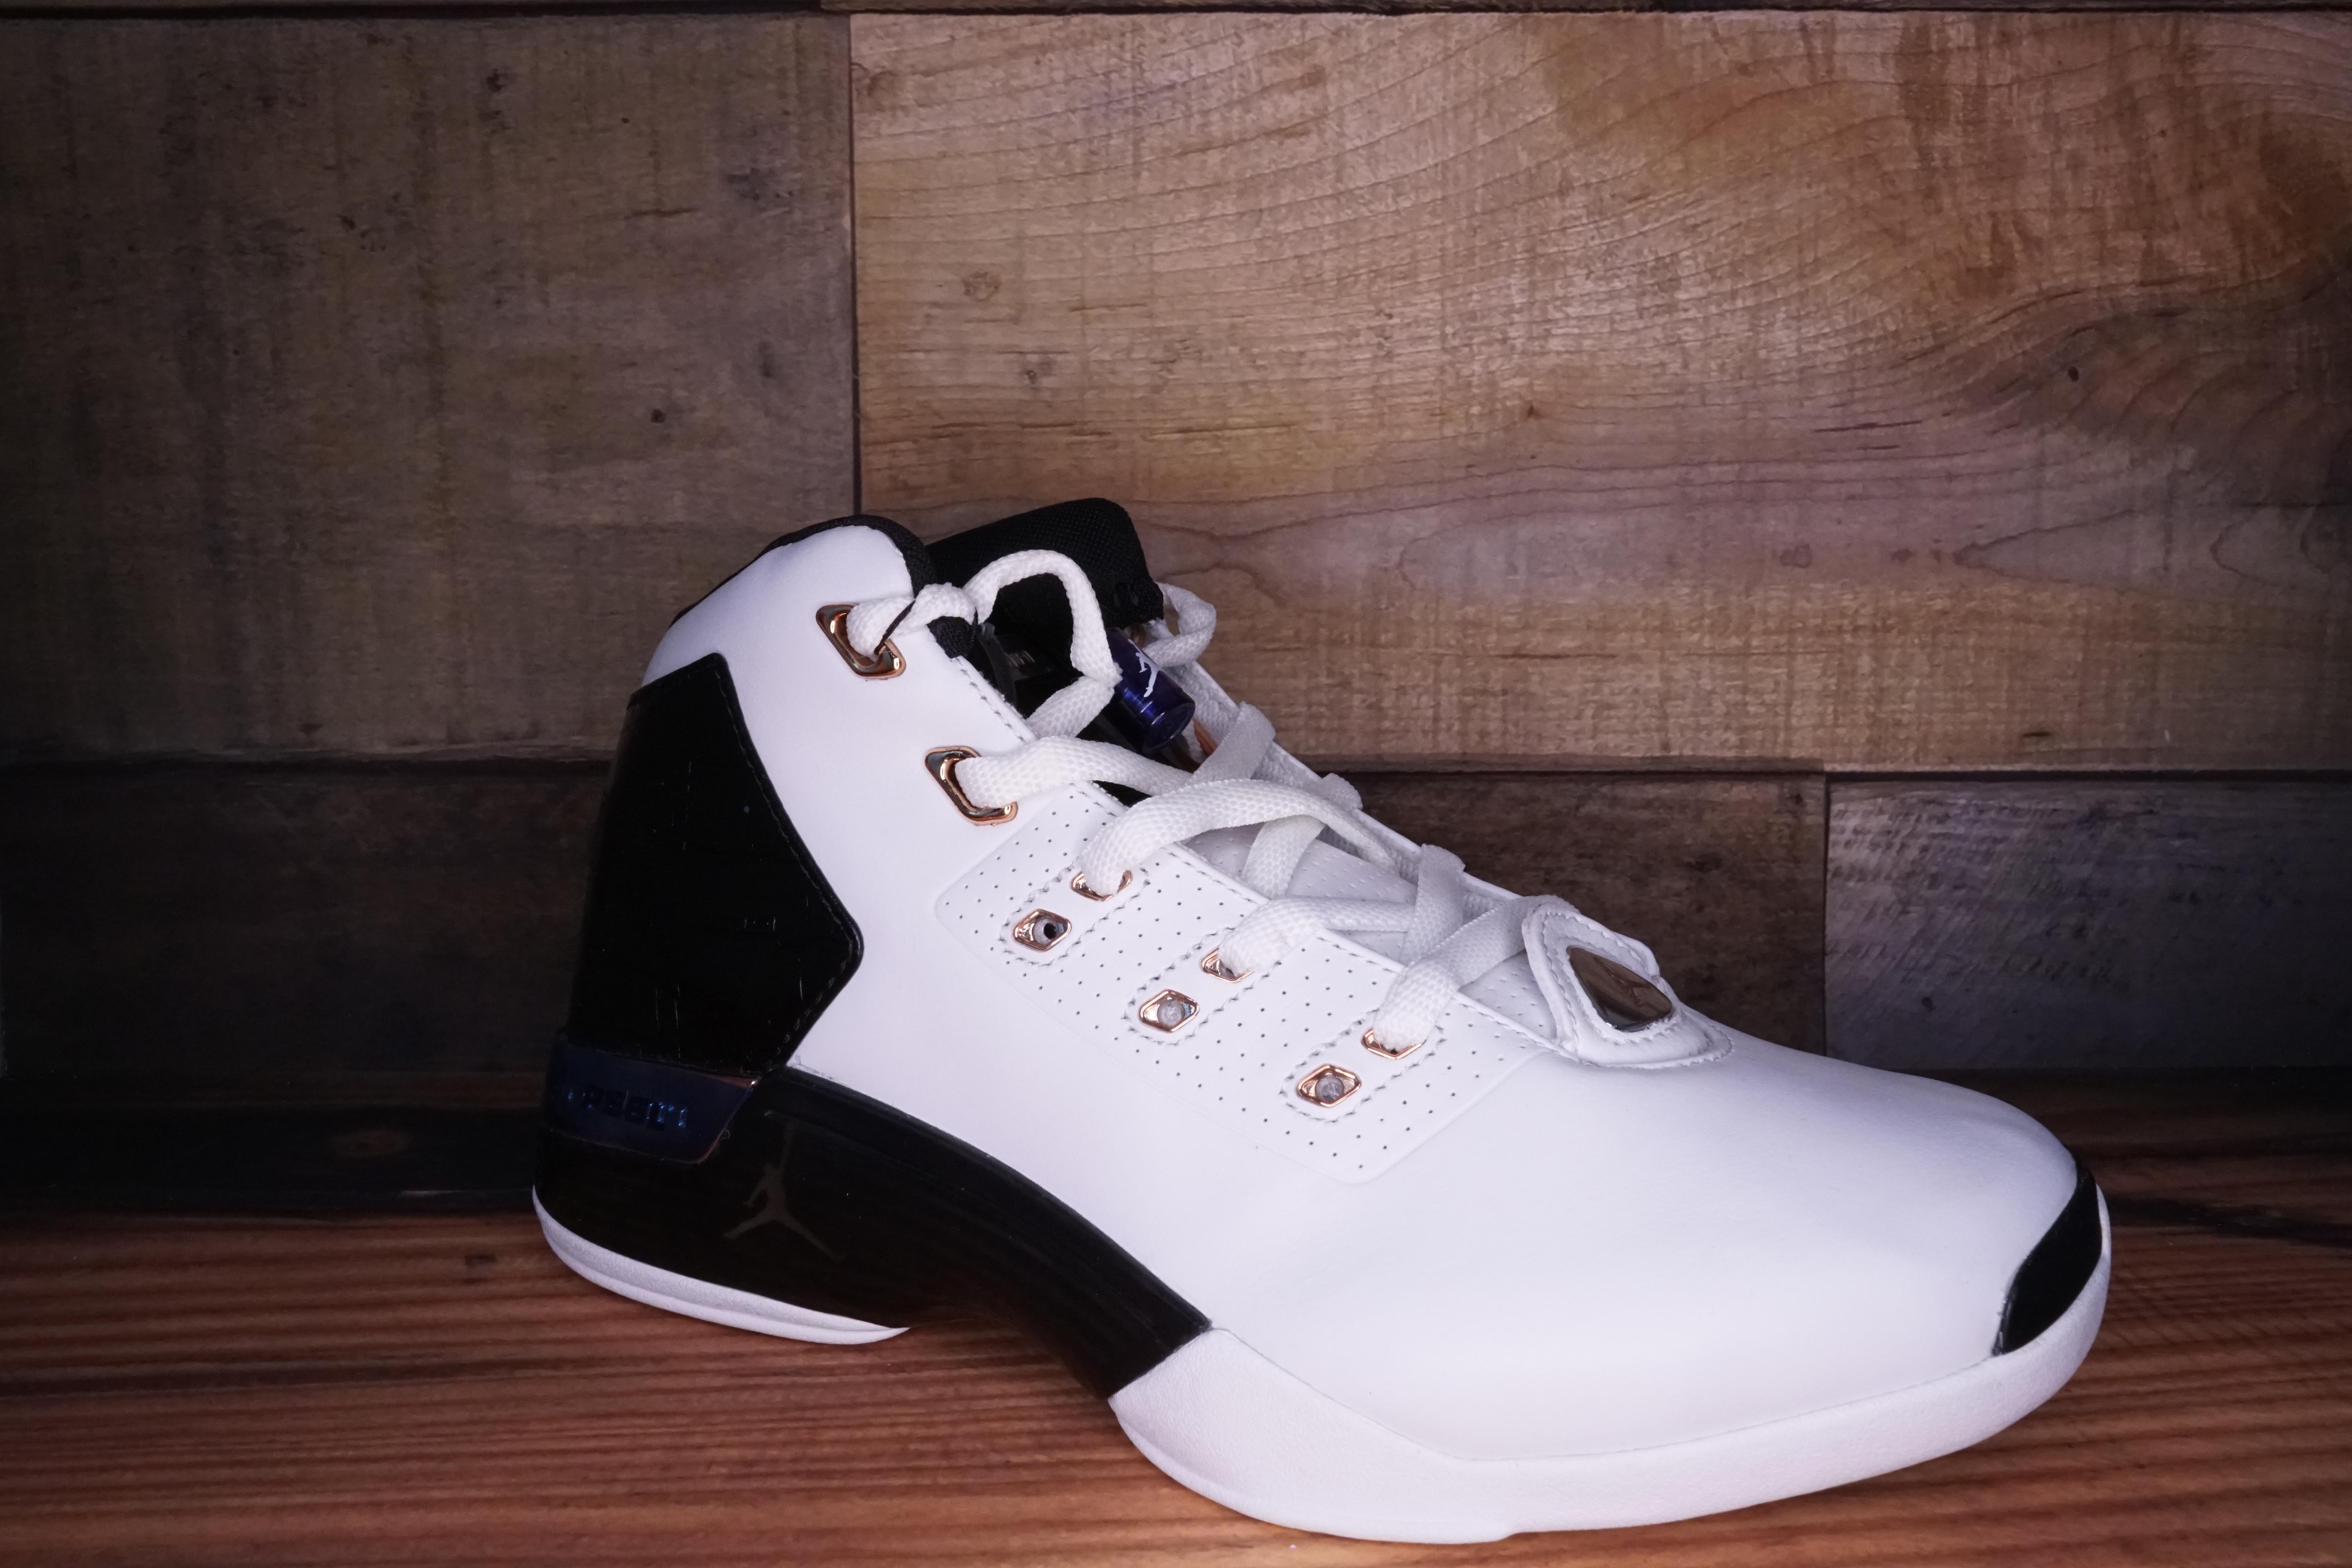 reputable site 6c2c4 65b8e ... Mens Fila F13 F-13 Classic Mid High Top Basketball Shoes Sneakers White  Black